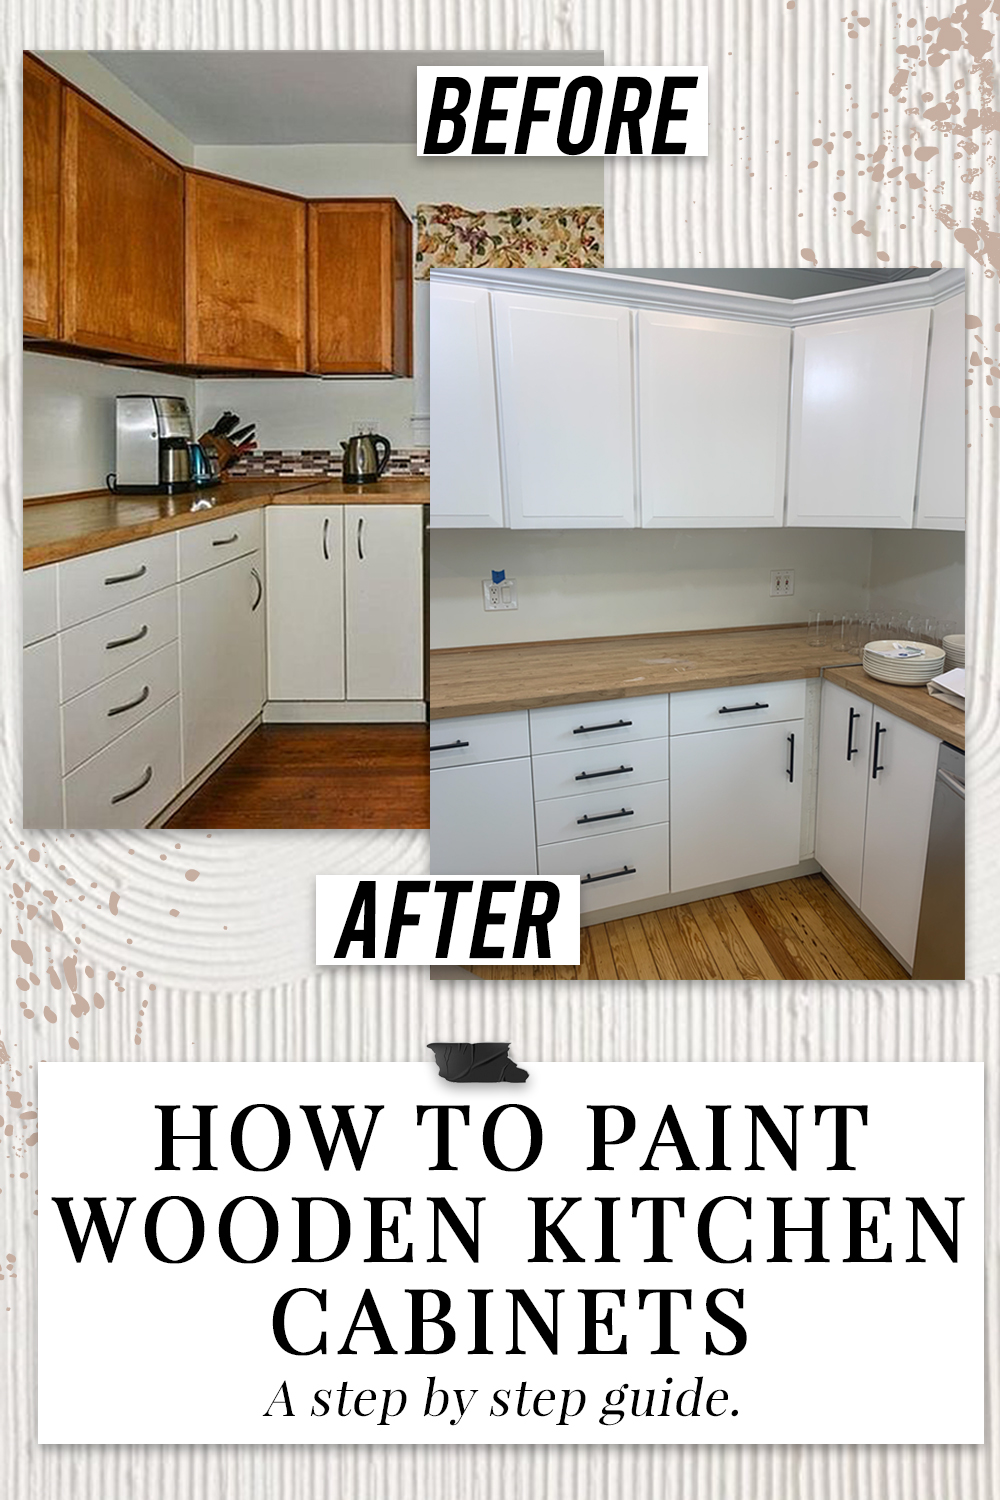 How To Paint Wooden Kitchen Cabinets Step By Step Guide Simply By Simone